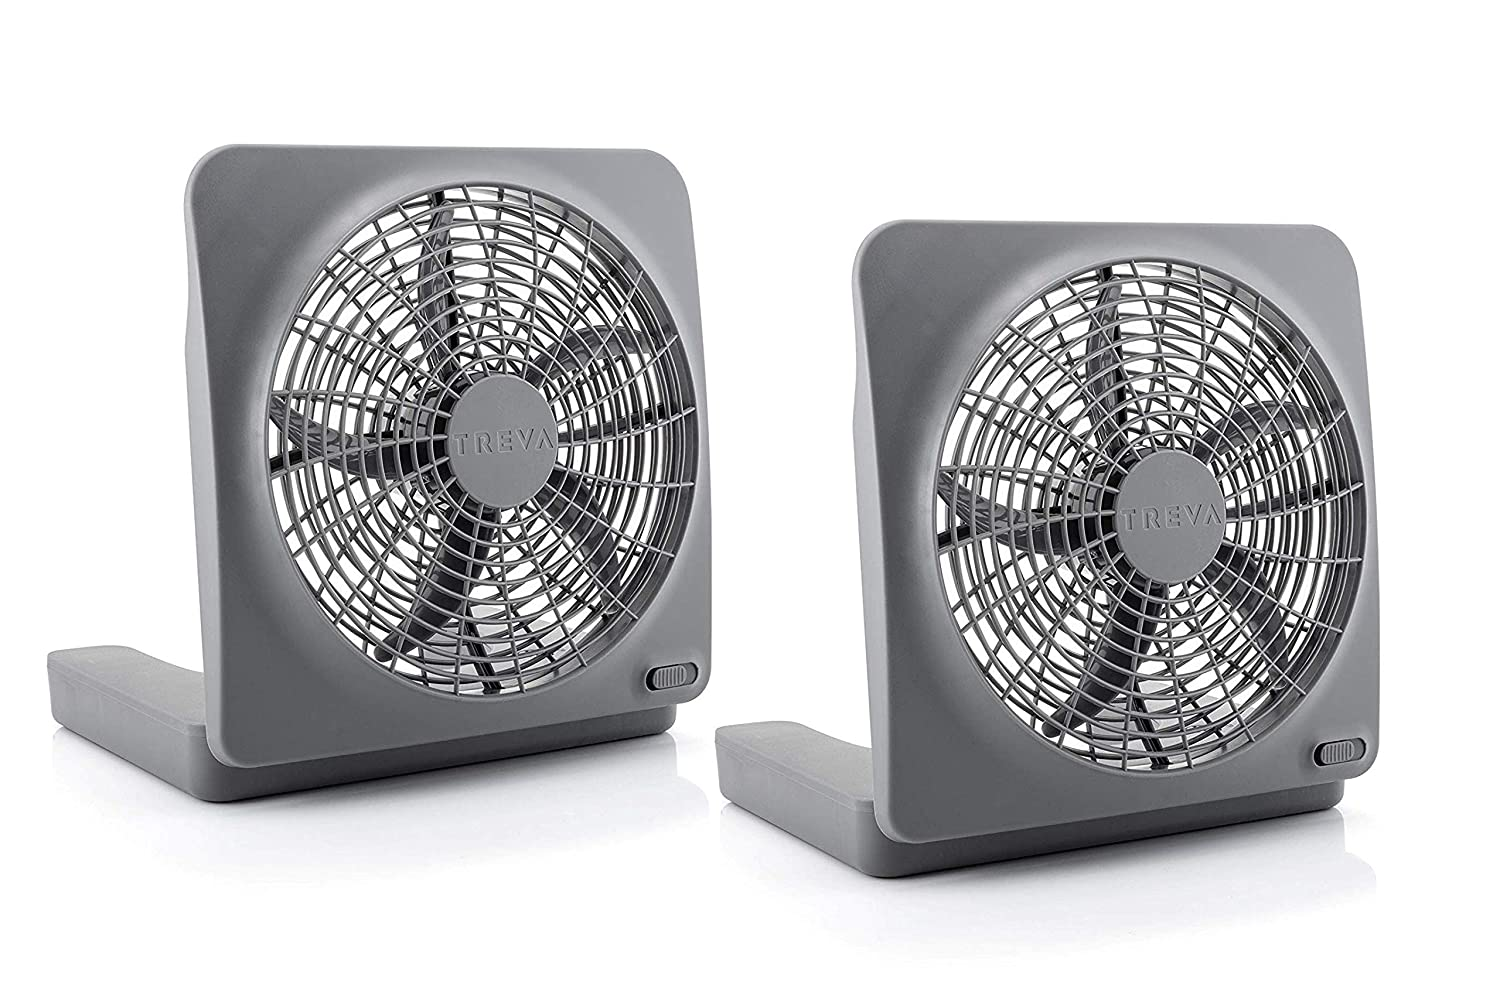 O2COOL Treva 10 Inch Portable Desktop Air Circulation Battery Powered Fan 2 Speed Control, Compact Folding and Tilt Design w AC Adapter 2 PACK